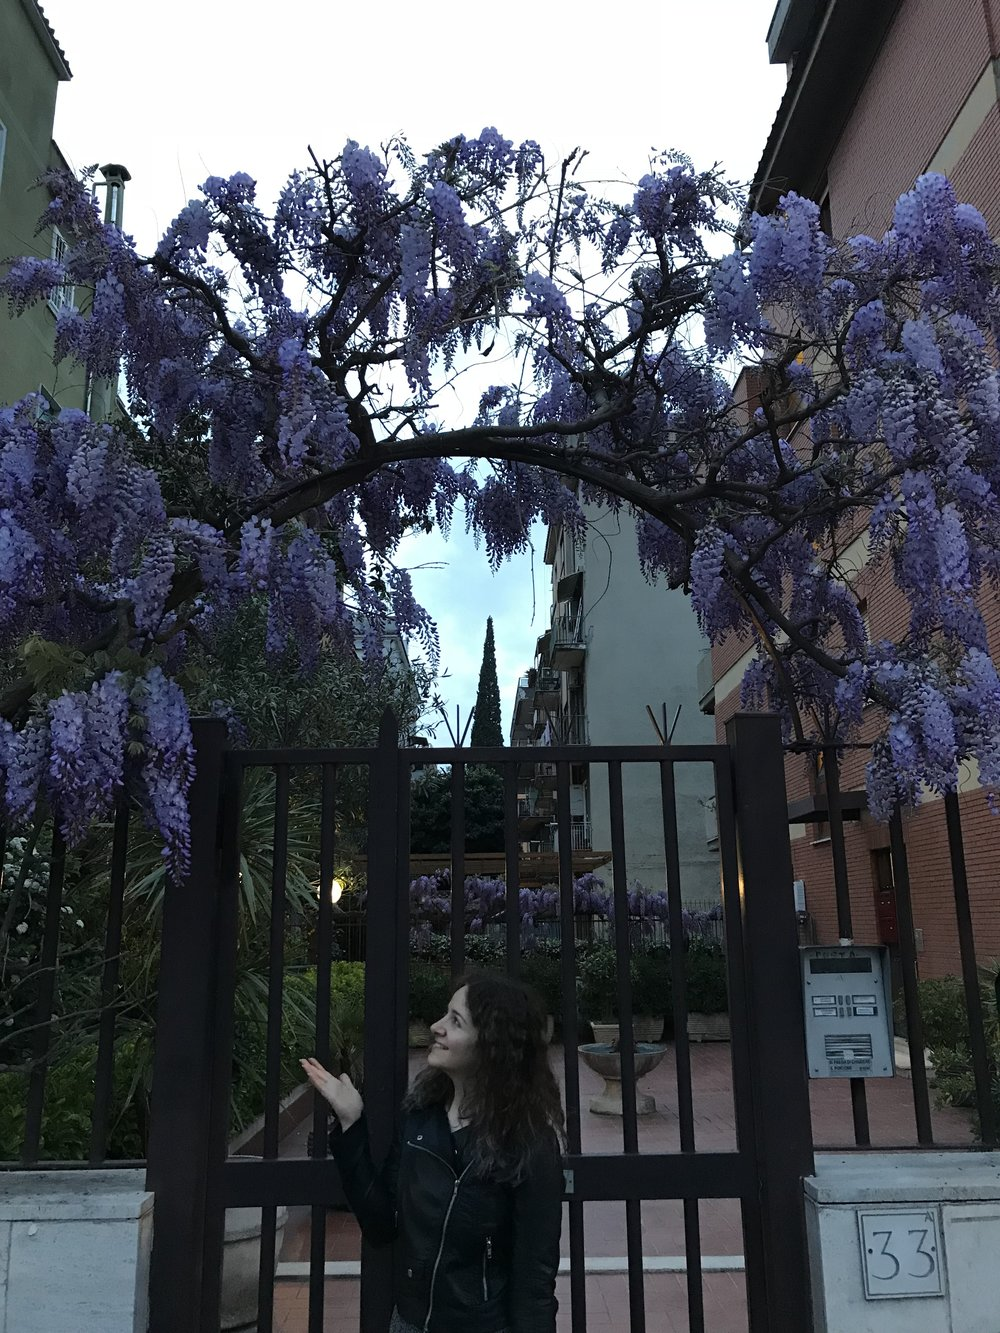 Wisteria flowers are in bloom here for a week! So magical.